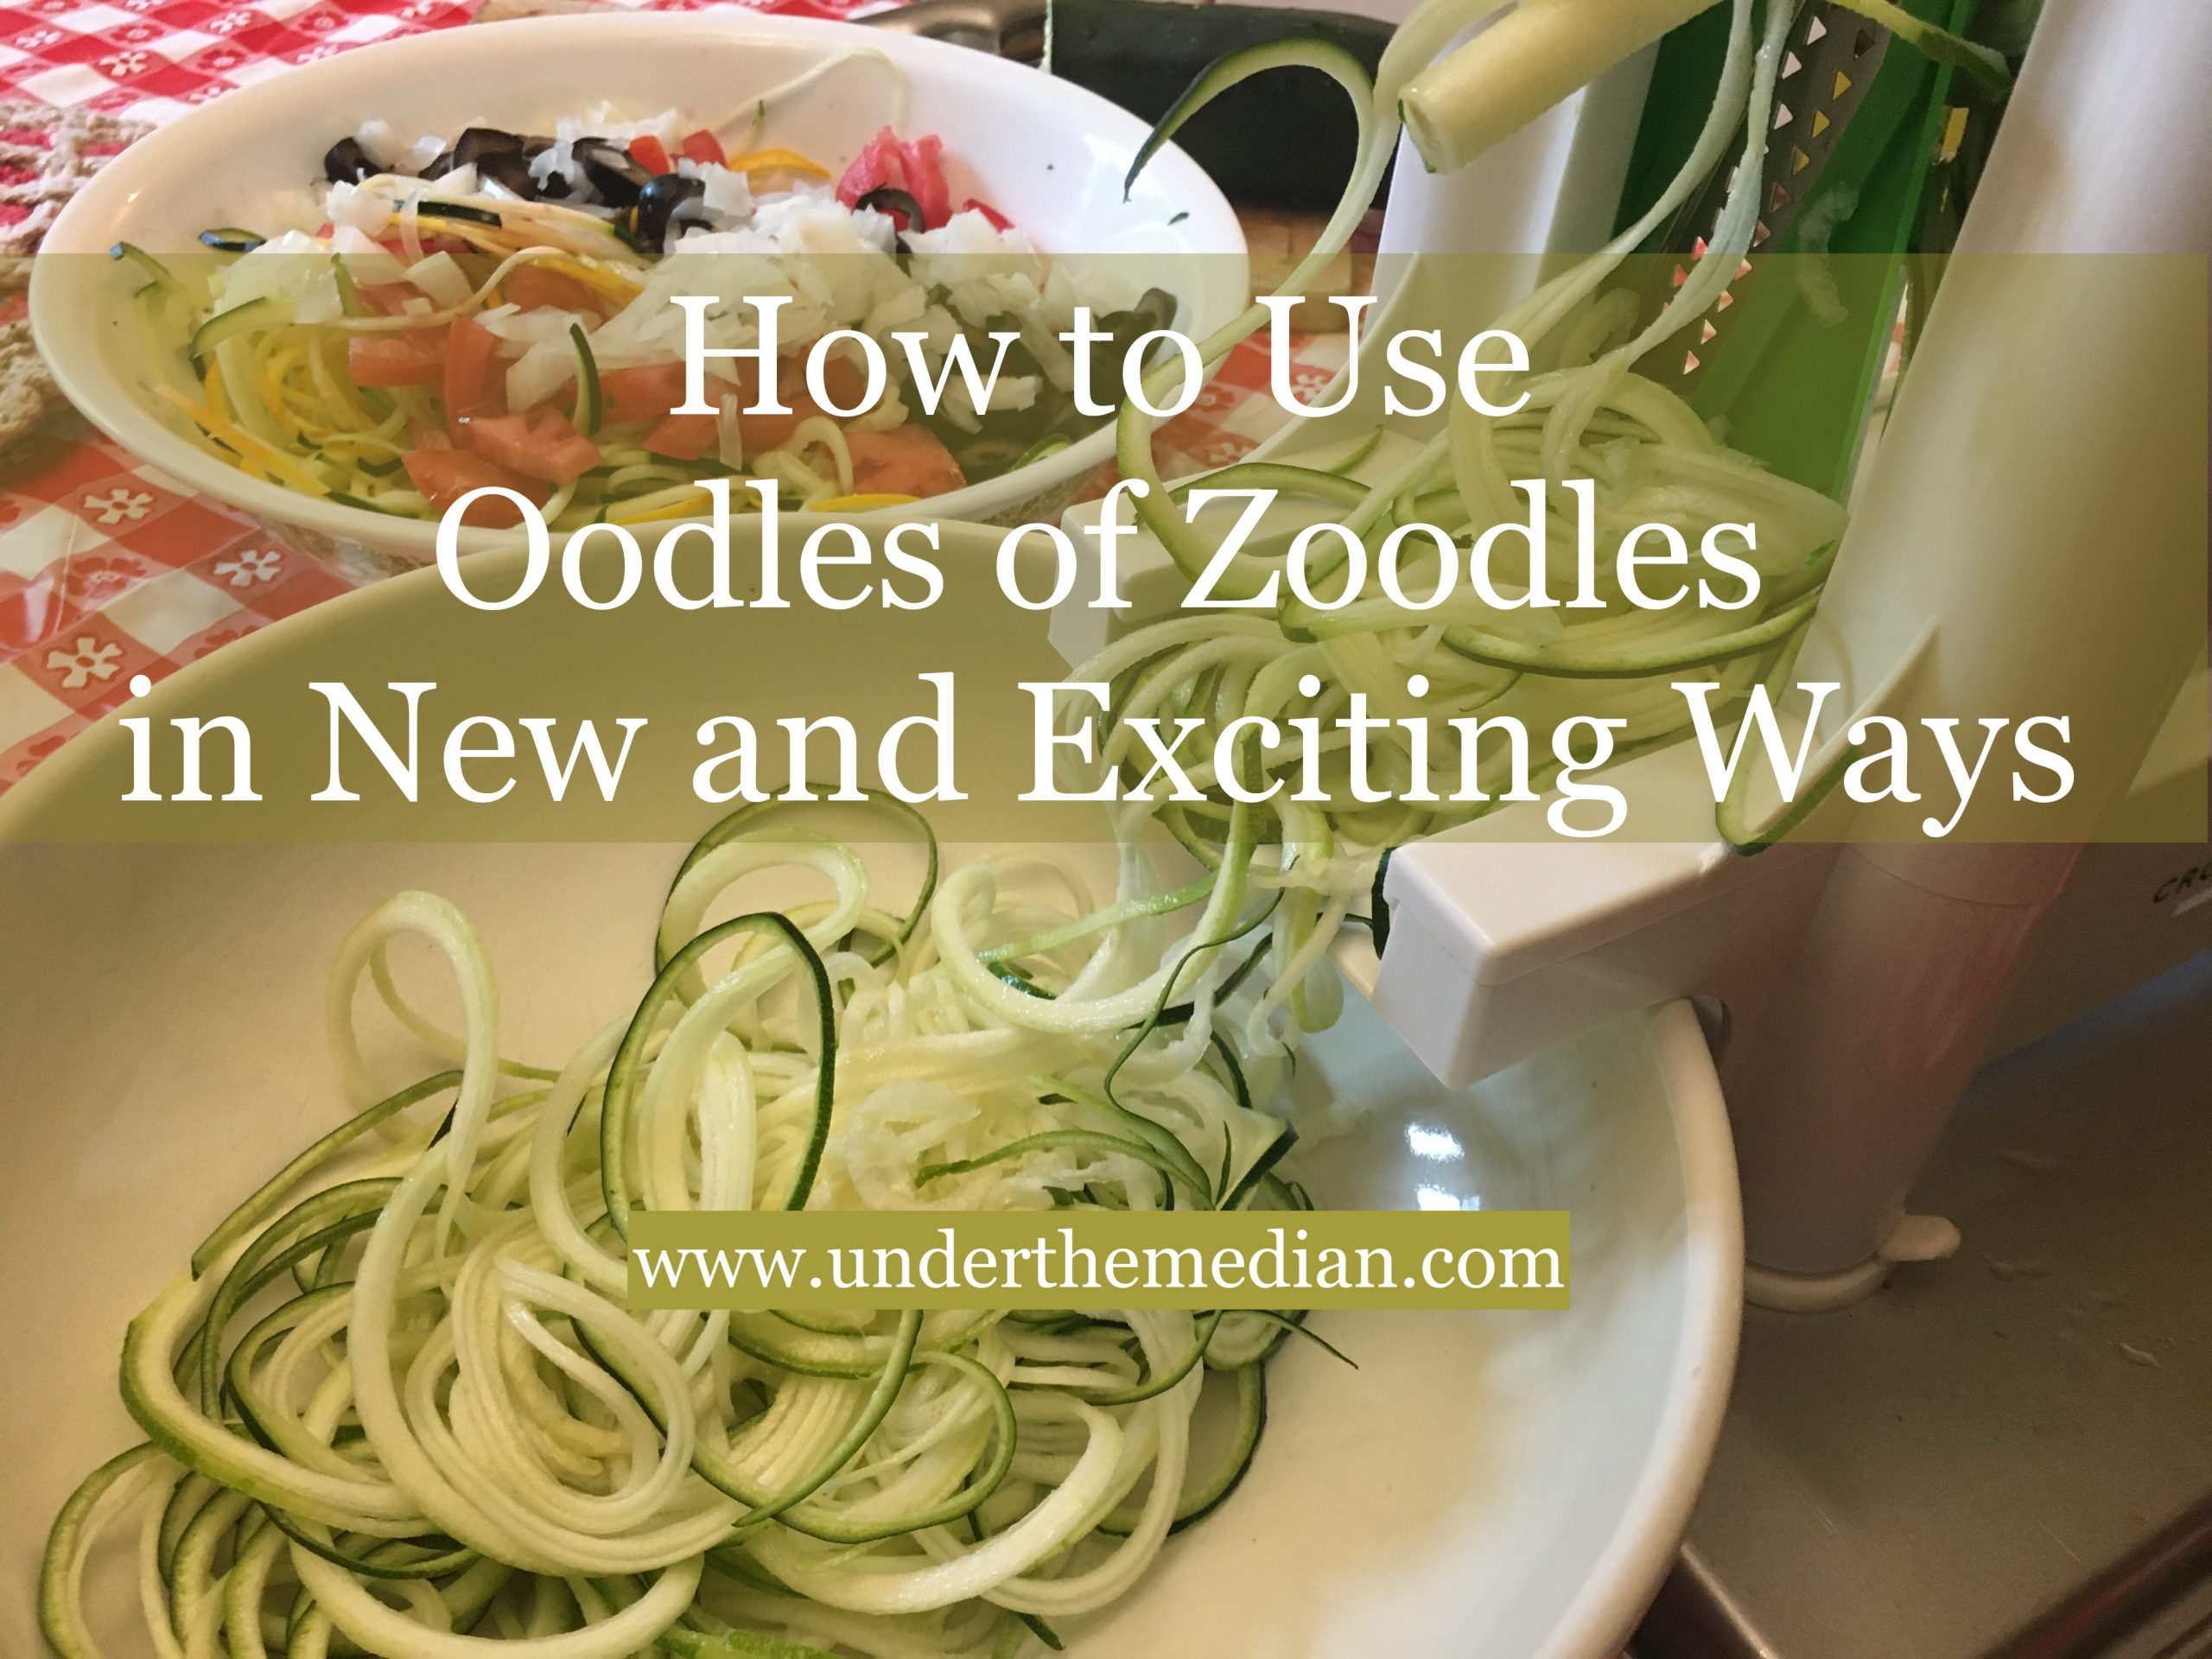 How to Use Oodles of Zoodles in New and Exciting Ways